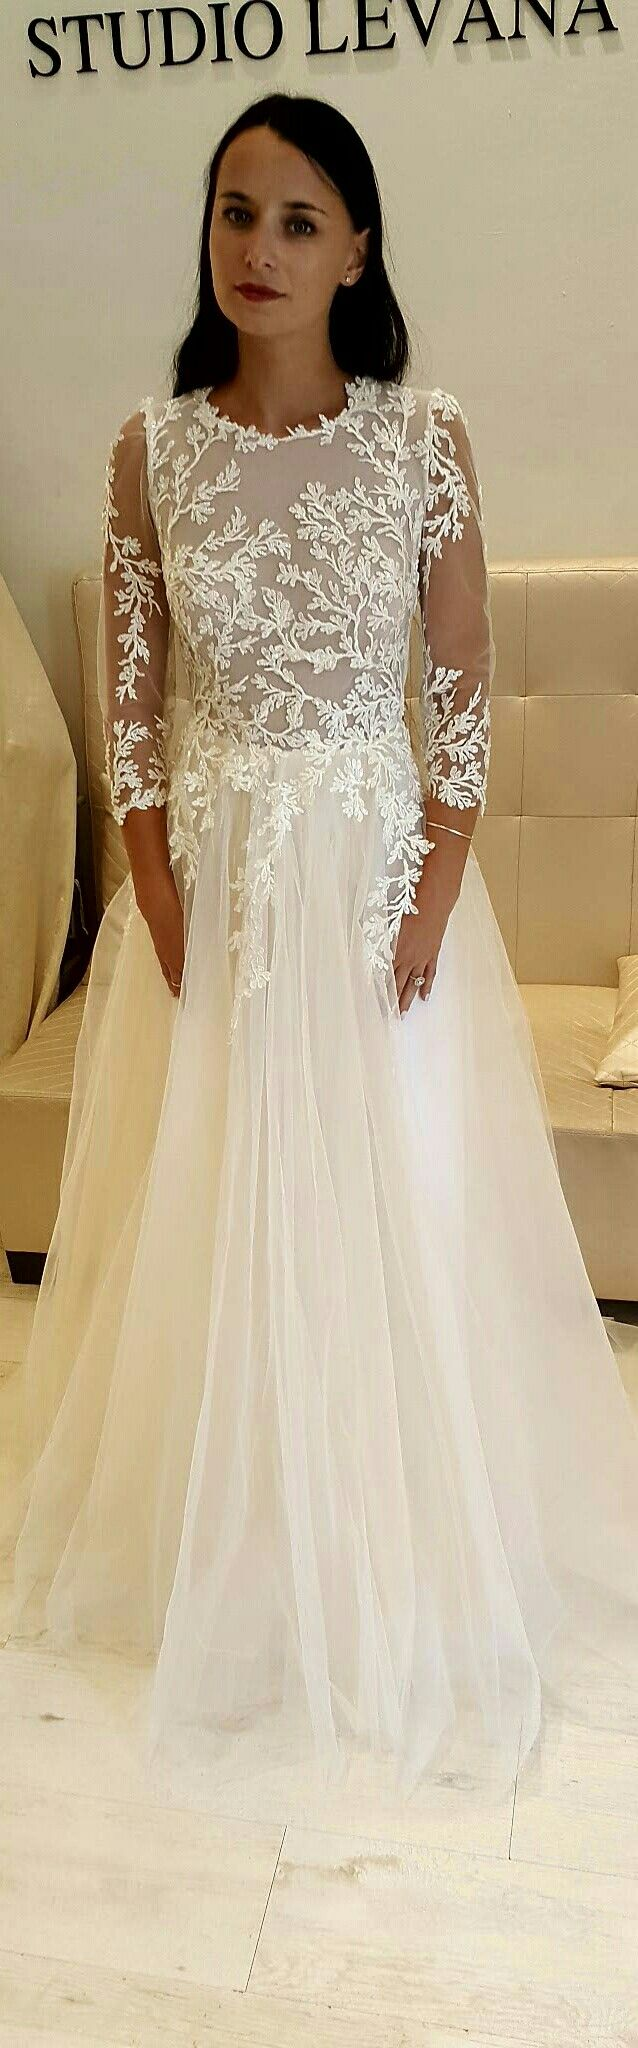 Modest wedding gown with high neck line sleeves and tulle skirt